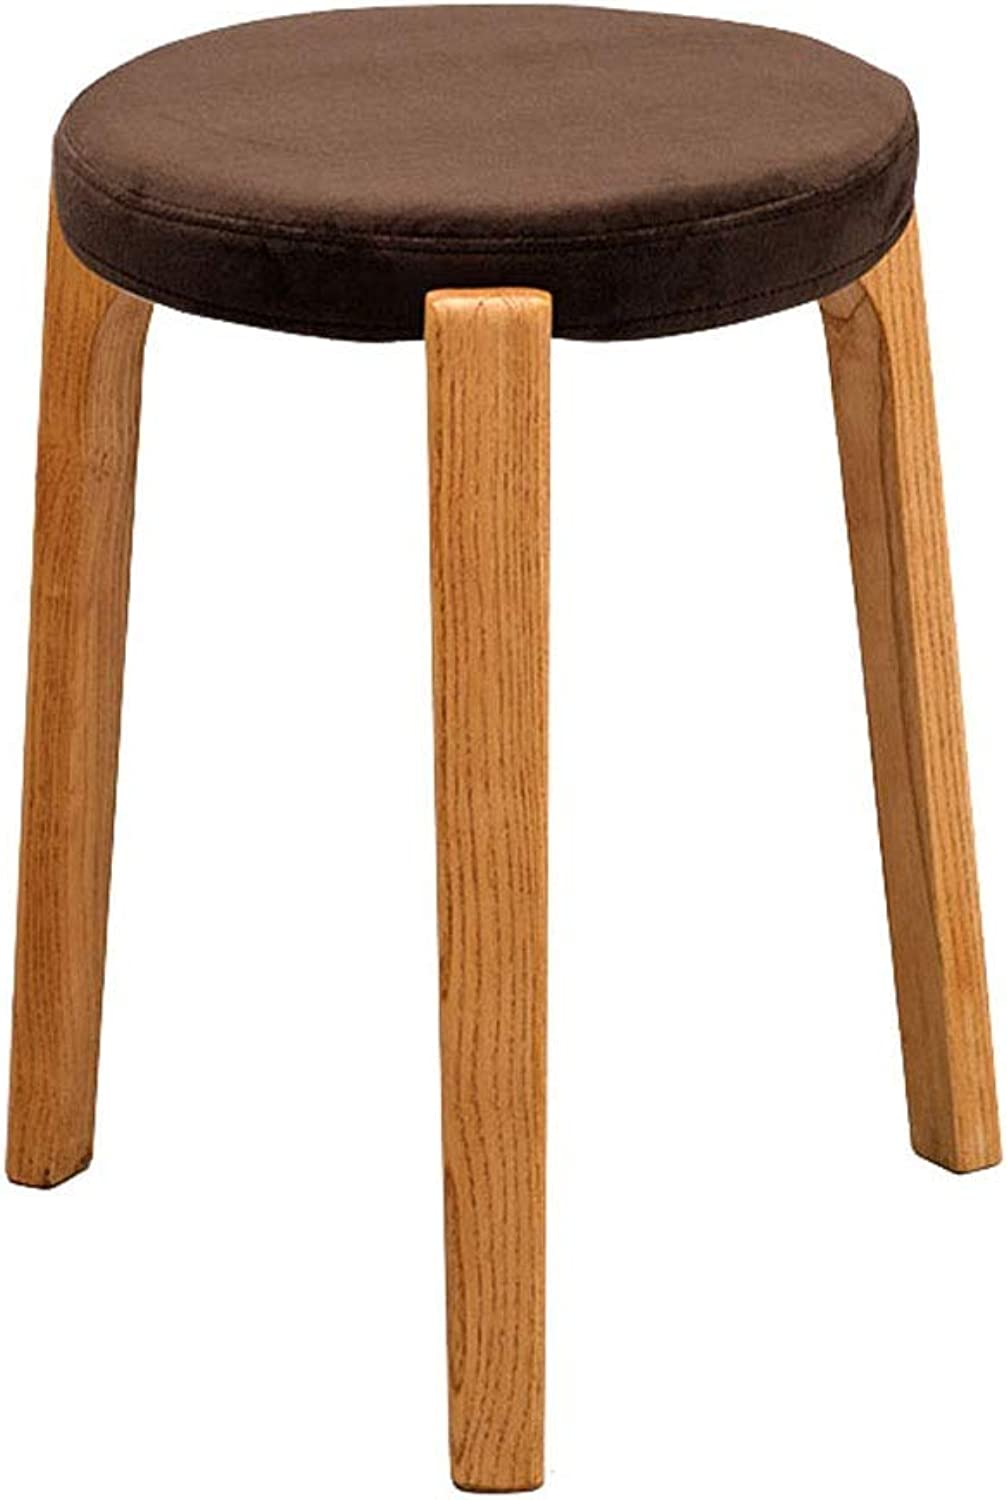 Footstools Solid Wood Stool Chair Brown Fabric Round Dressing Stool Seat Three Leg Support Living Room Dining Stool (color   A)